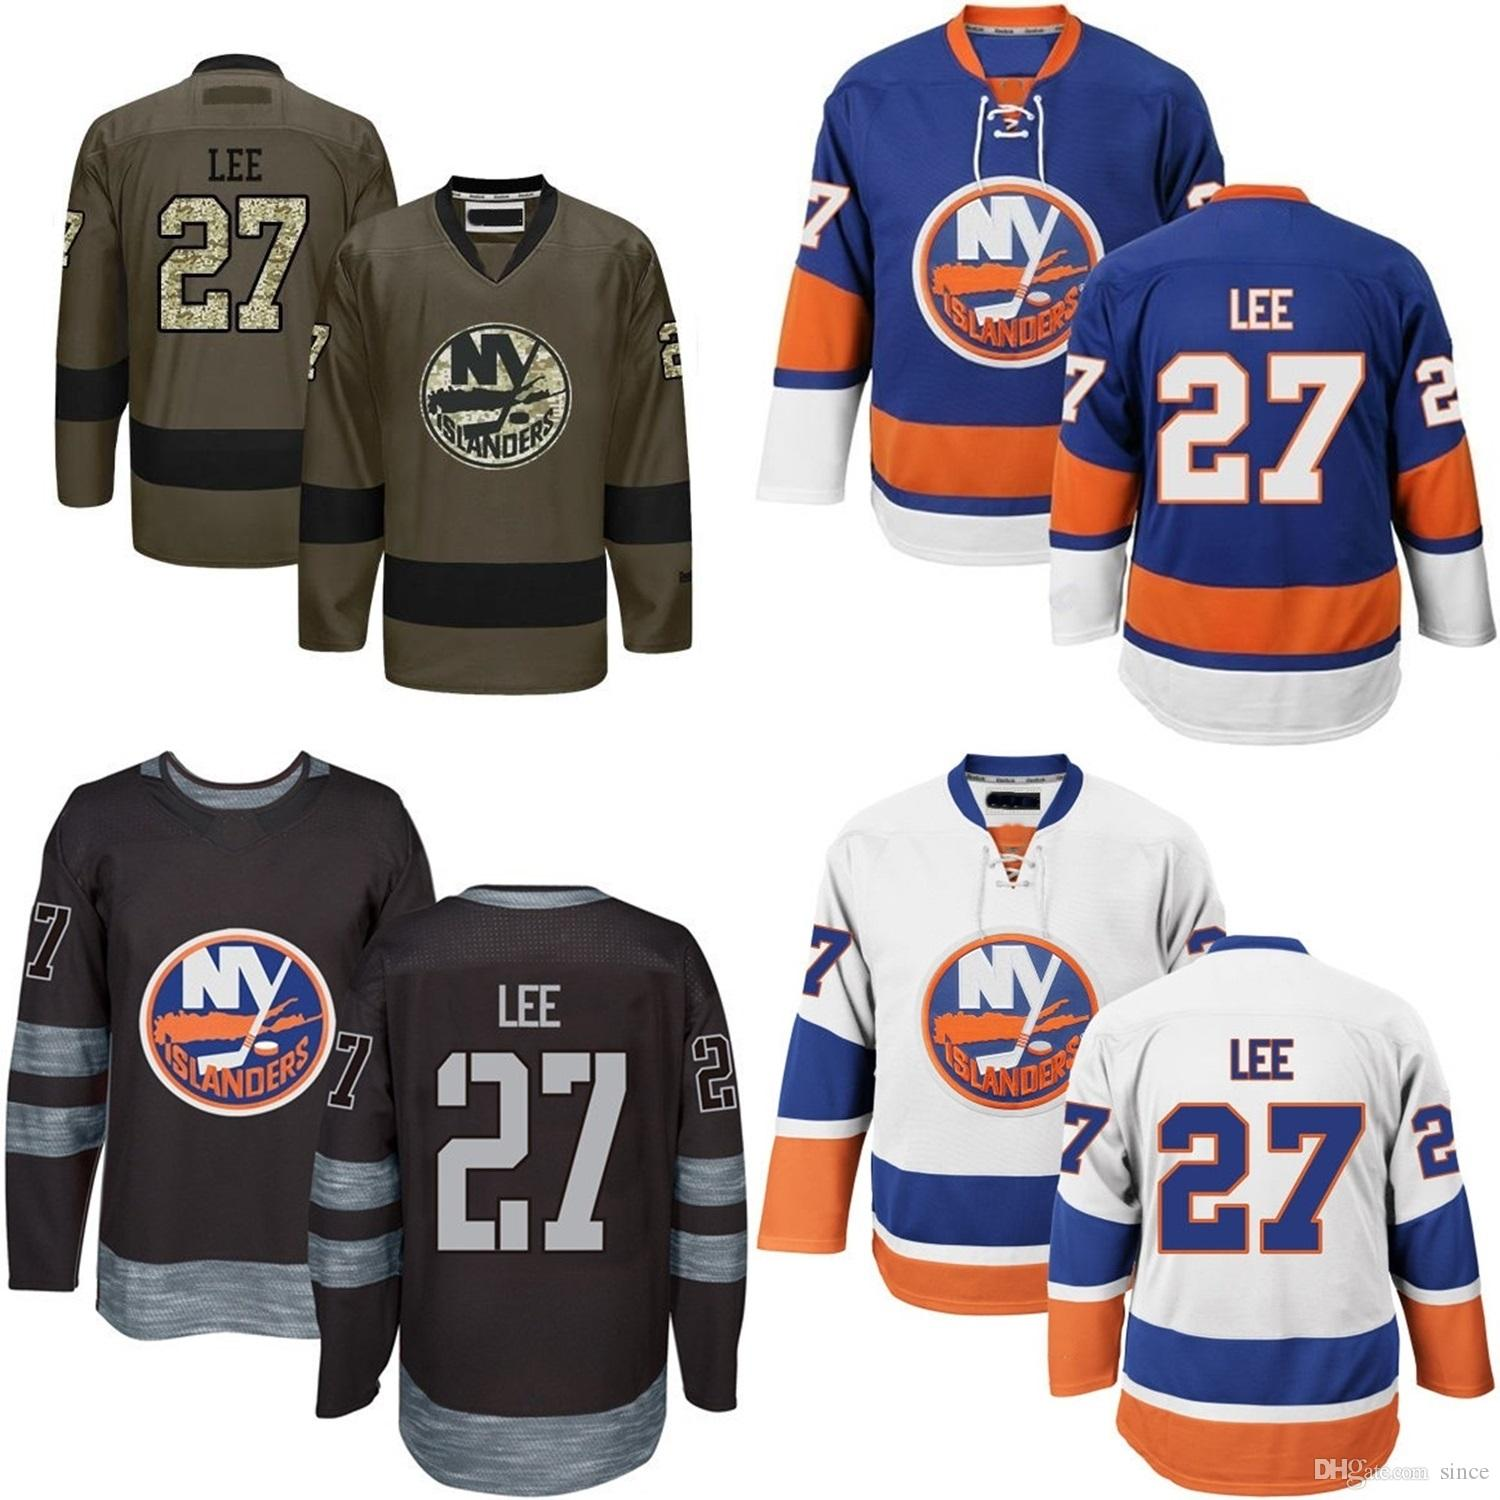 newest 723ba ae95e 2016 New MENS New York Islanders 27 Anders Lee Hockey Jersey Blue White  Black Green 100% Embroidery logo Authentic uniforms Size M-3XL